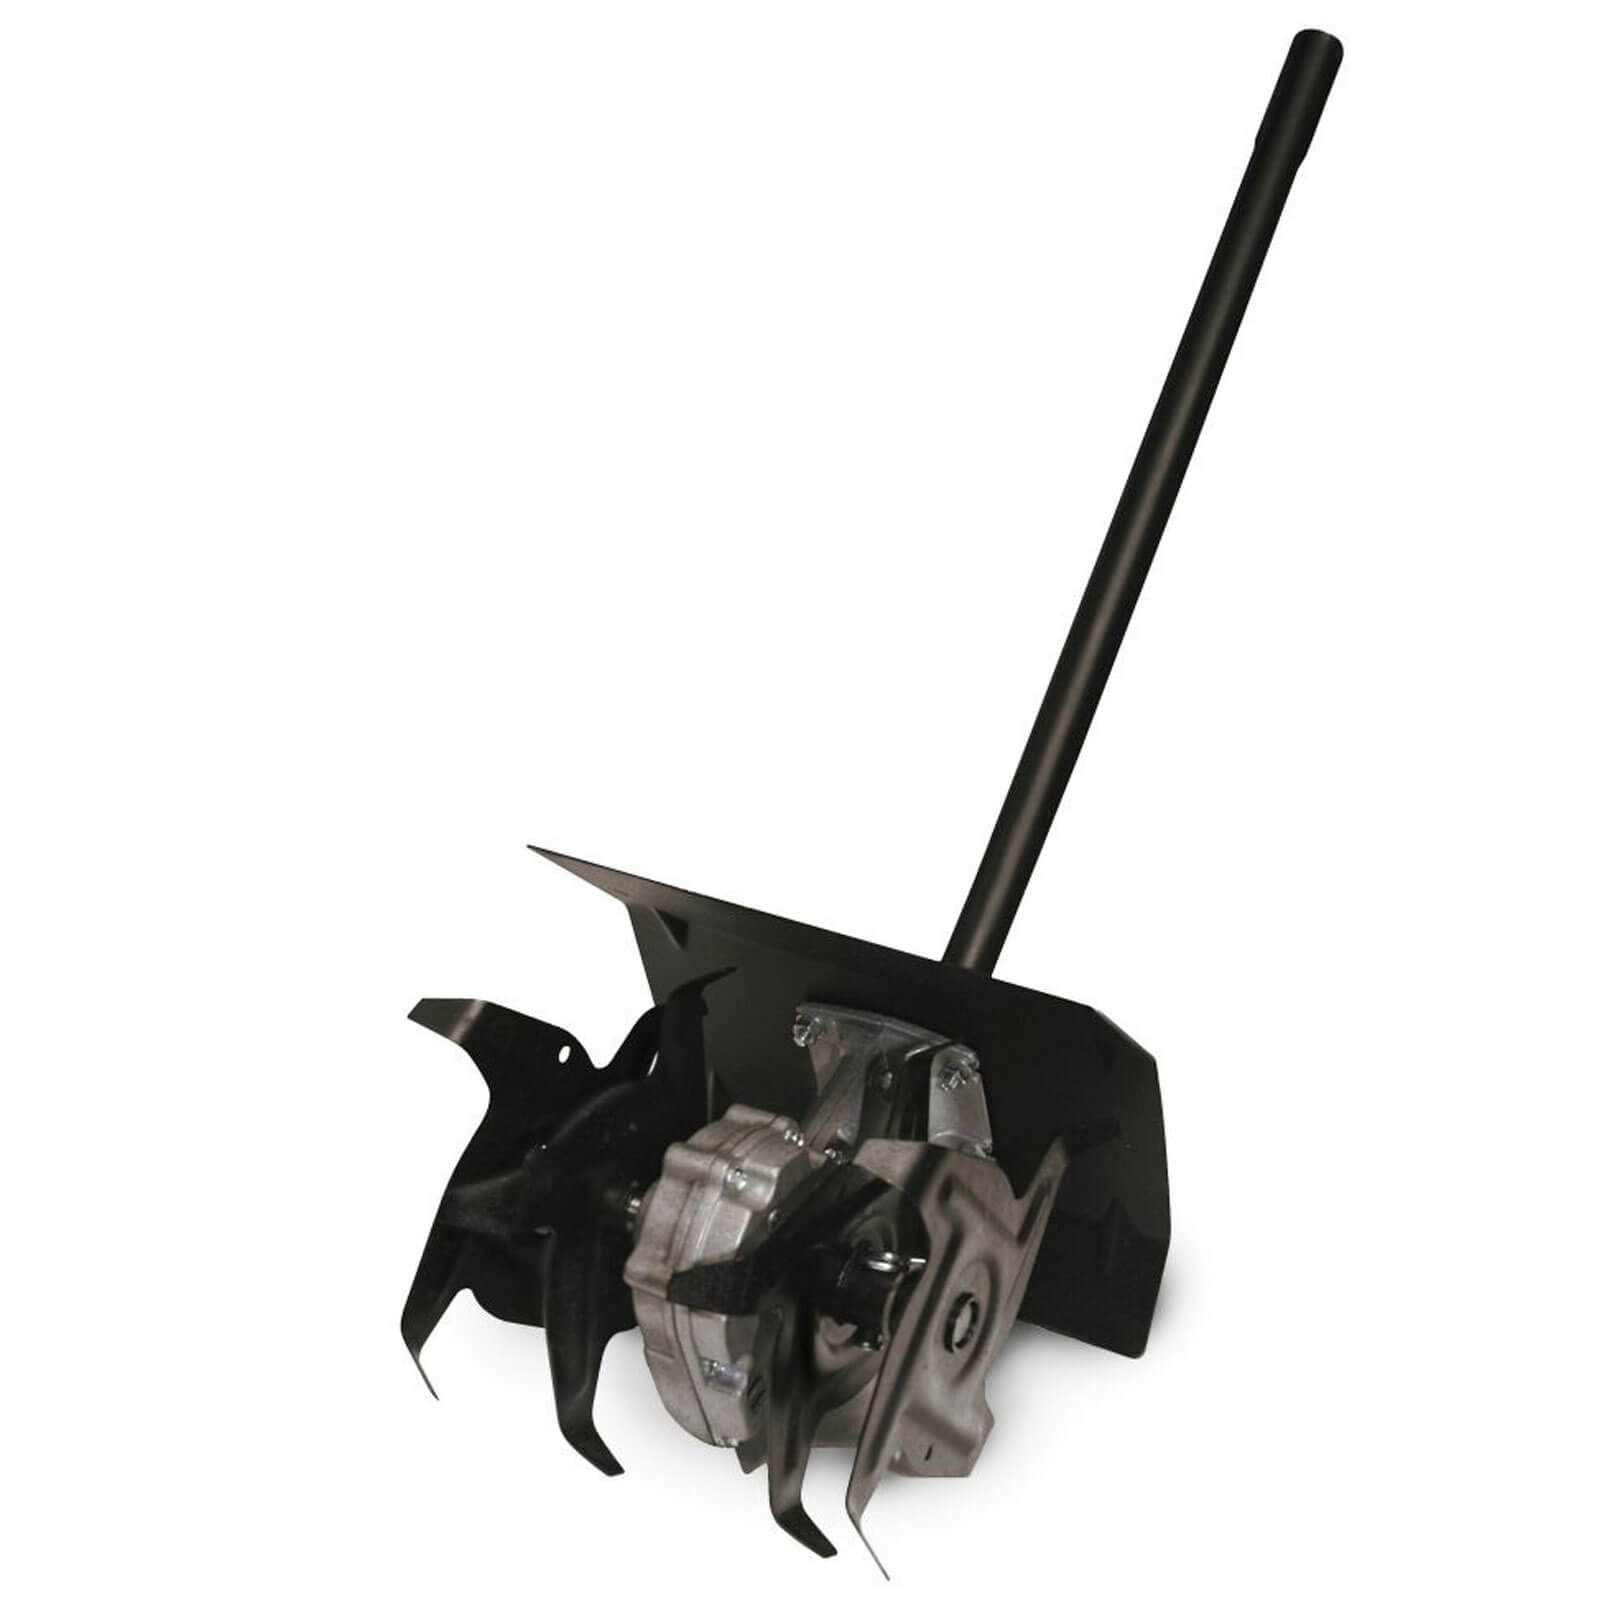 McCulloch Cultivator Multi Tool Attachment for McCulloch Multi Tool Compatible Brush Cutters & Grass Trimmers